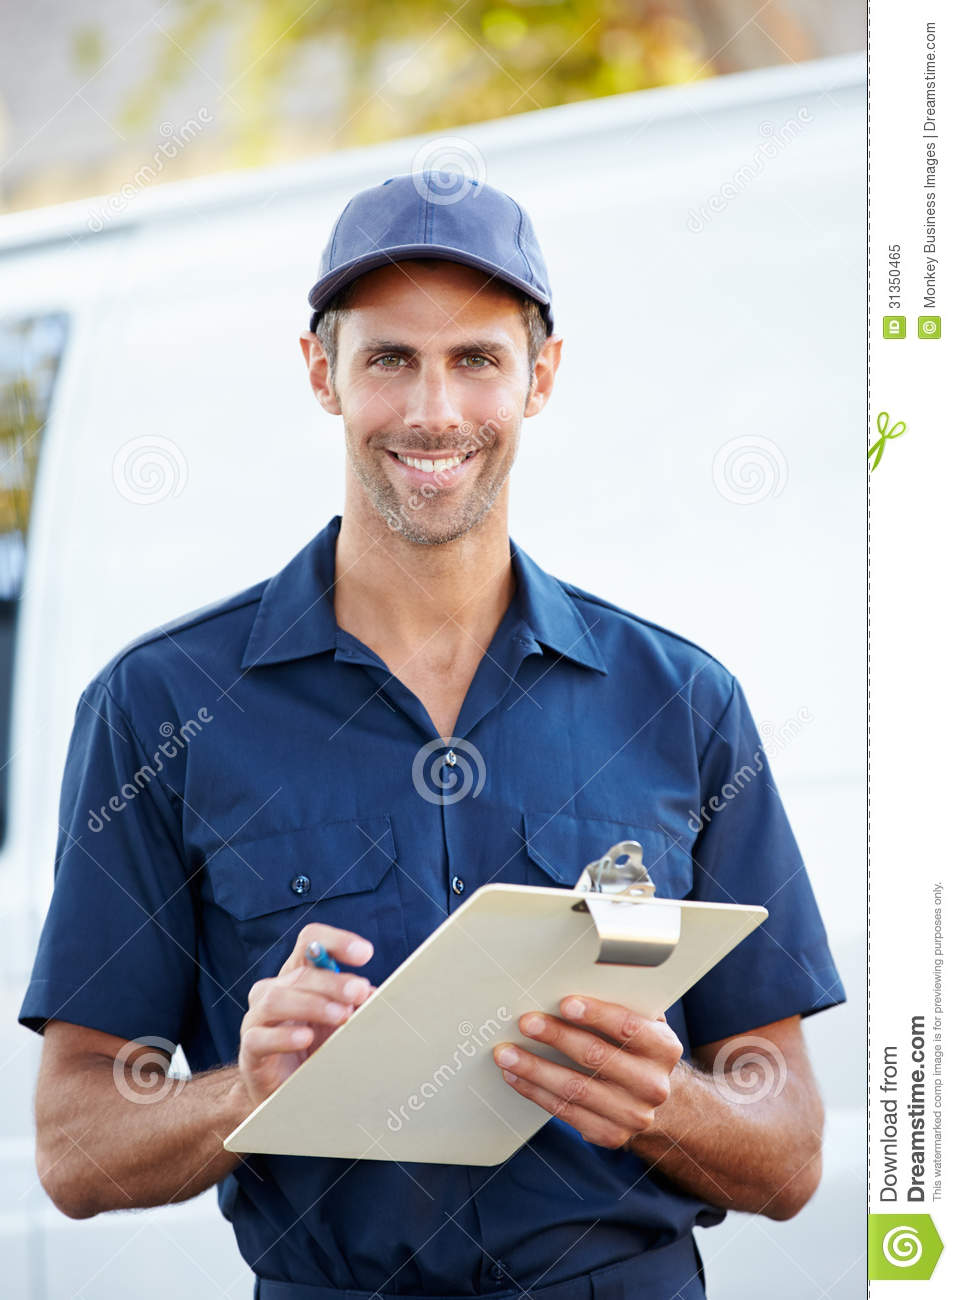 Portrait Of Delivery Driver With Clipboard Royalty Free Stock ...